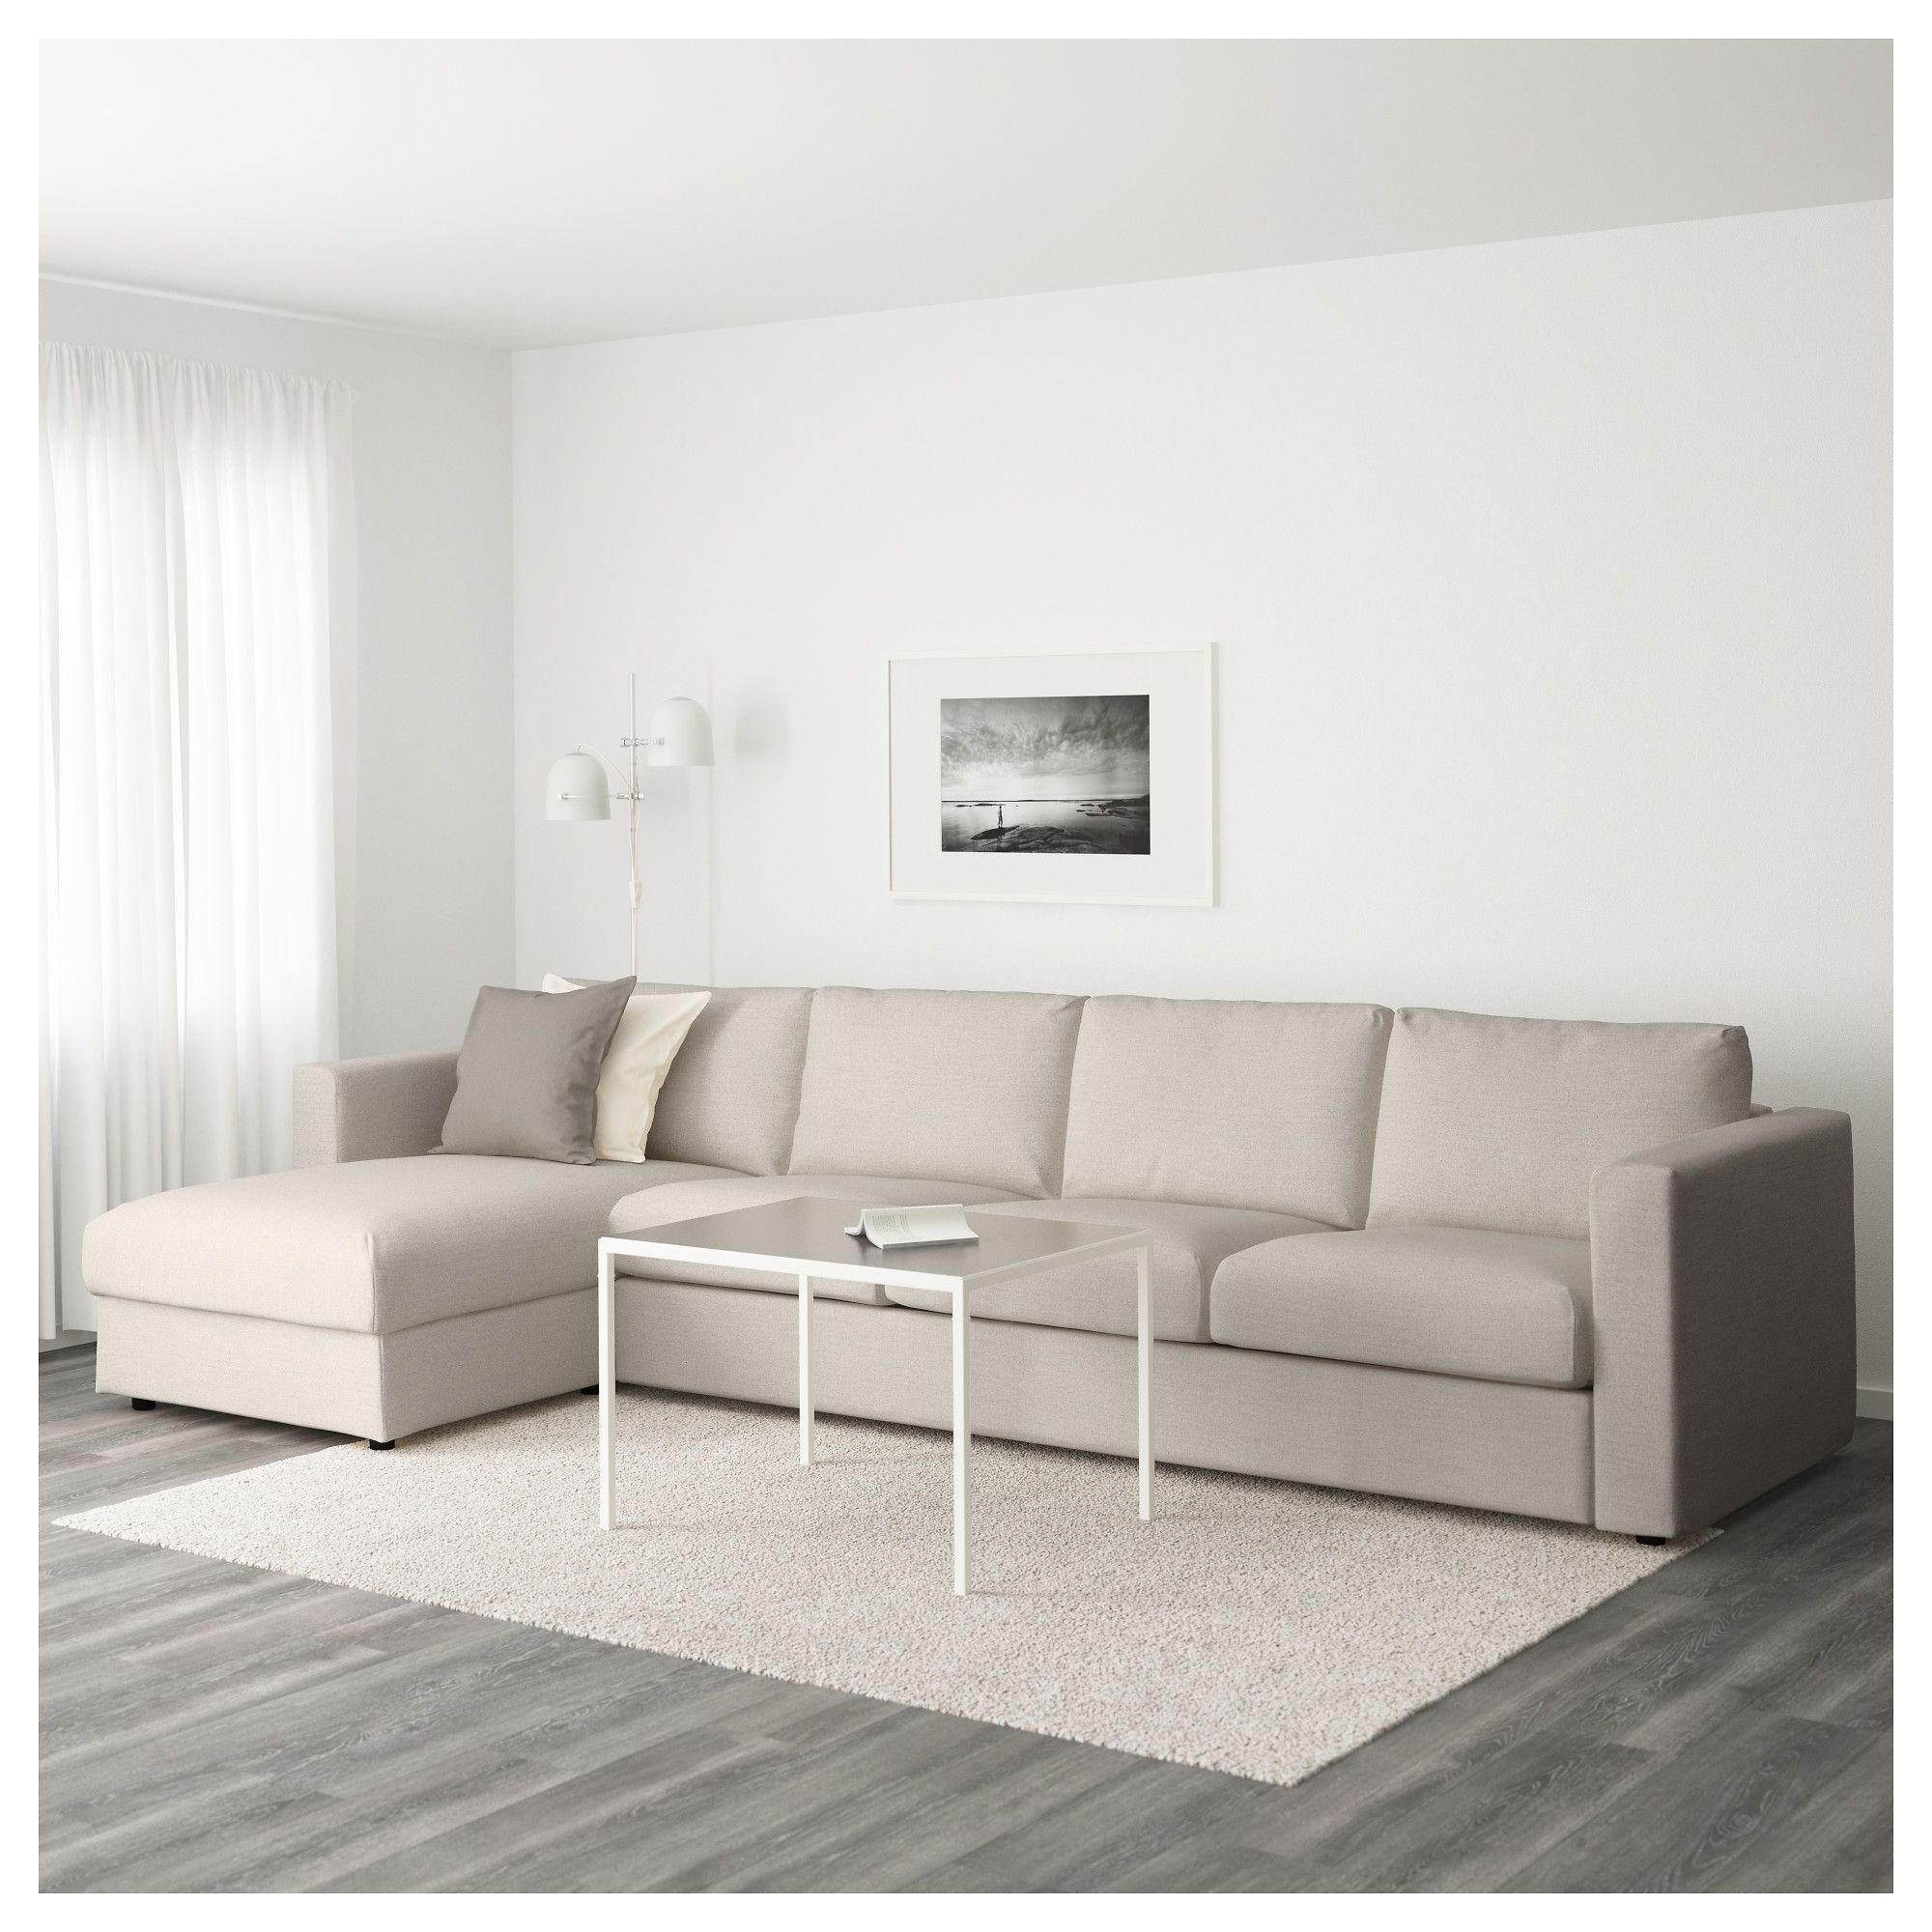 Ikea Vimle Sectional 4 Seat With Chaise Gunnared Beige Cozy Sofa Sectional Sofa